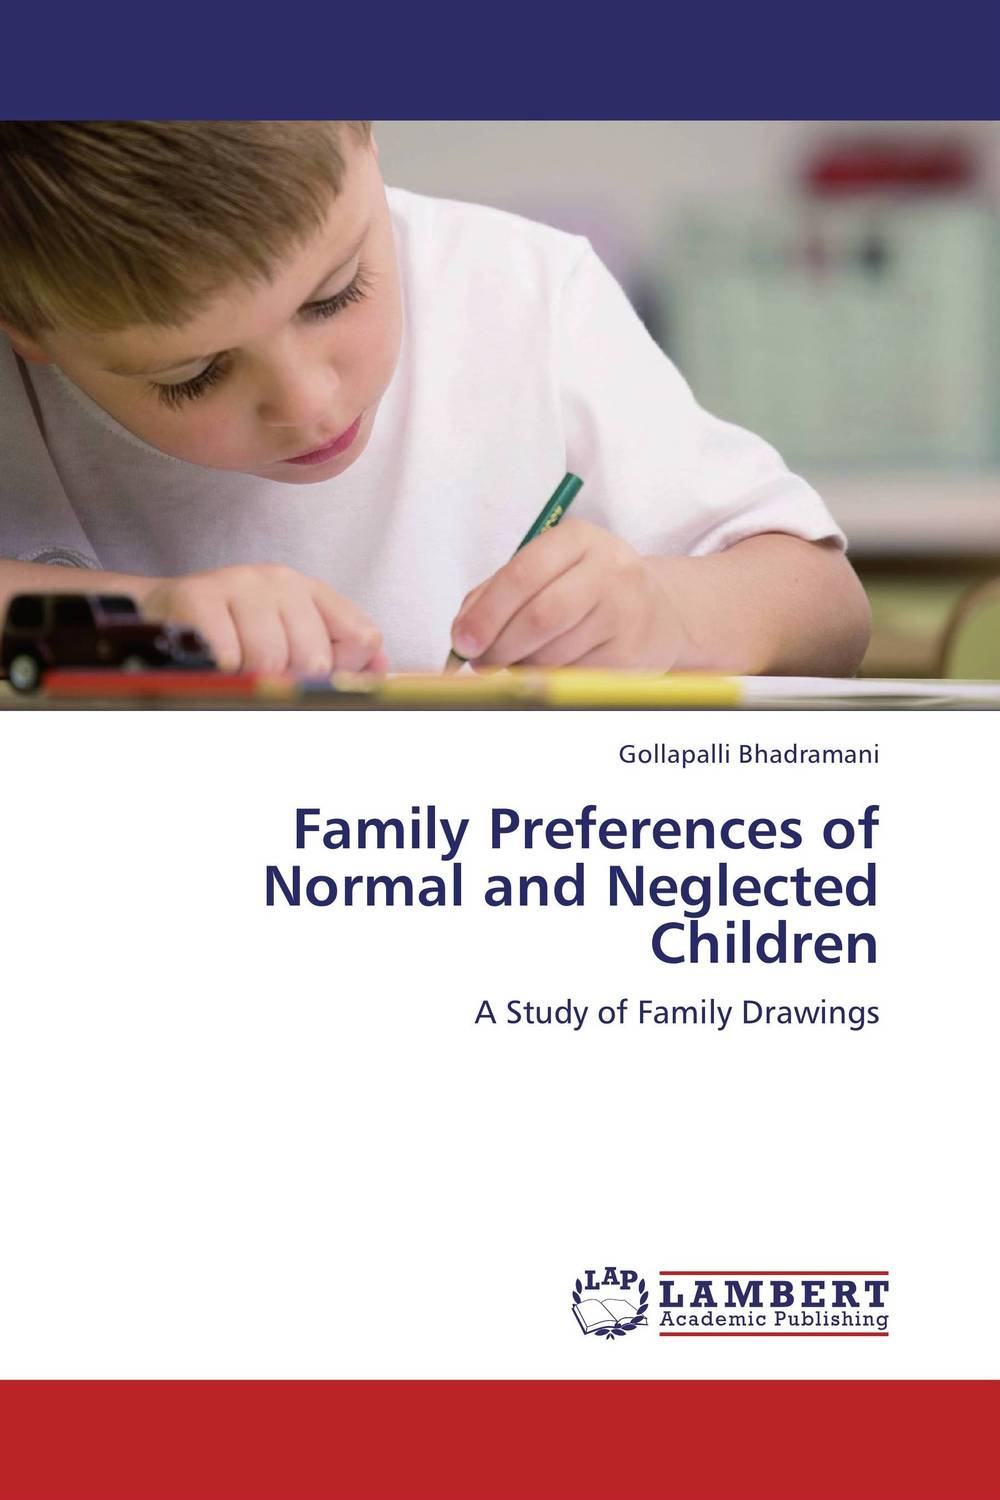 Family Preferences of Normal and Neglected Children family caregiving in the new normal